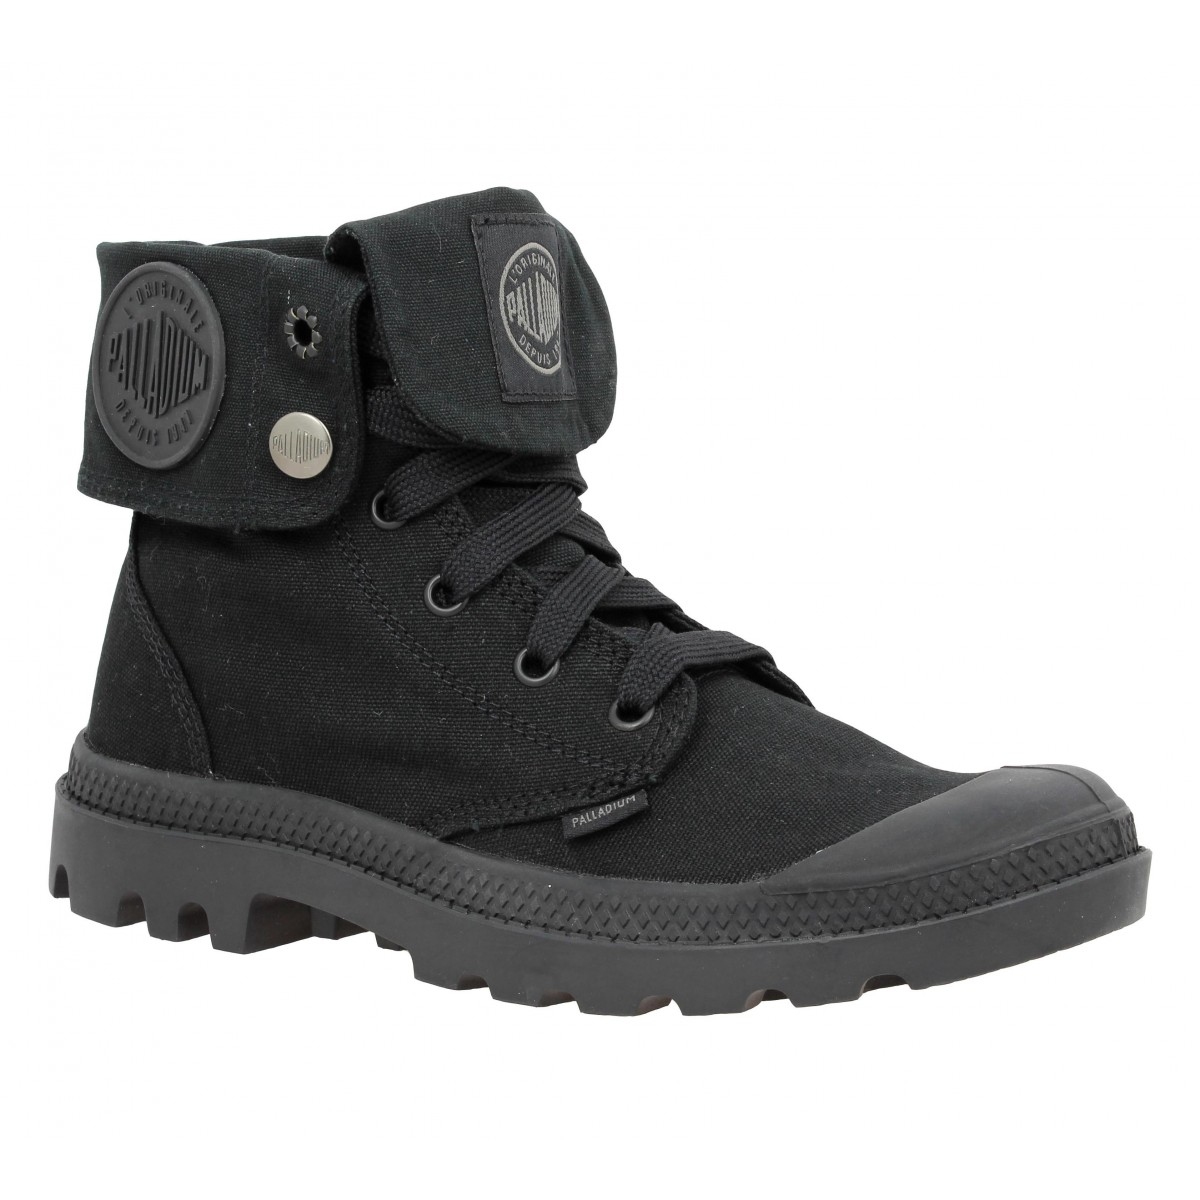 Bottines PALLADIUM US Baggy Monochrome toile Homme Noir